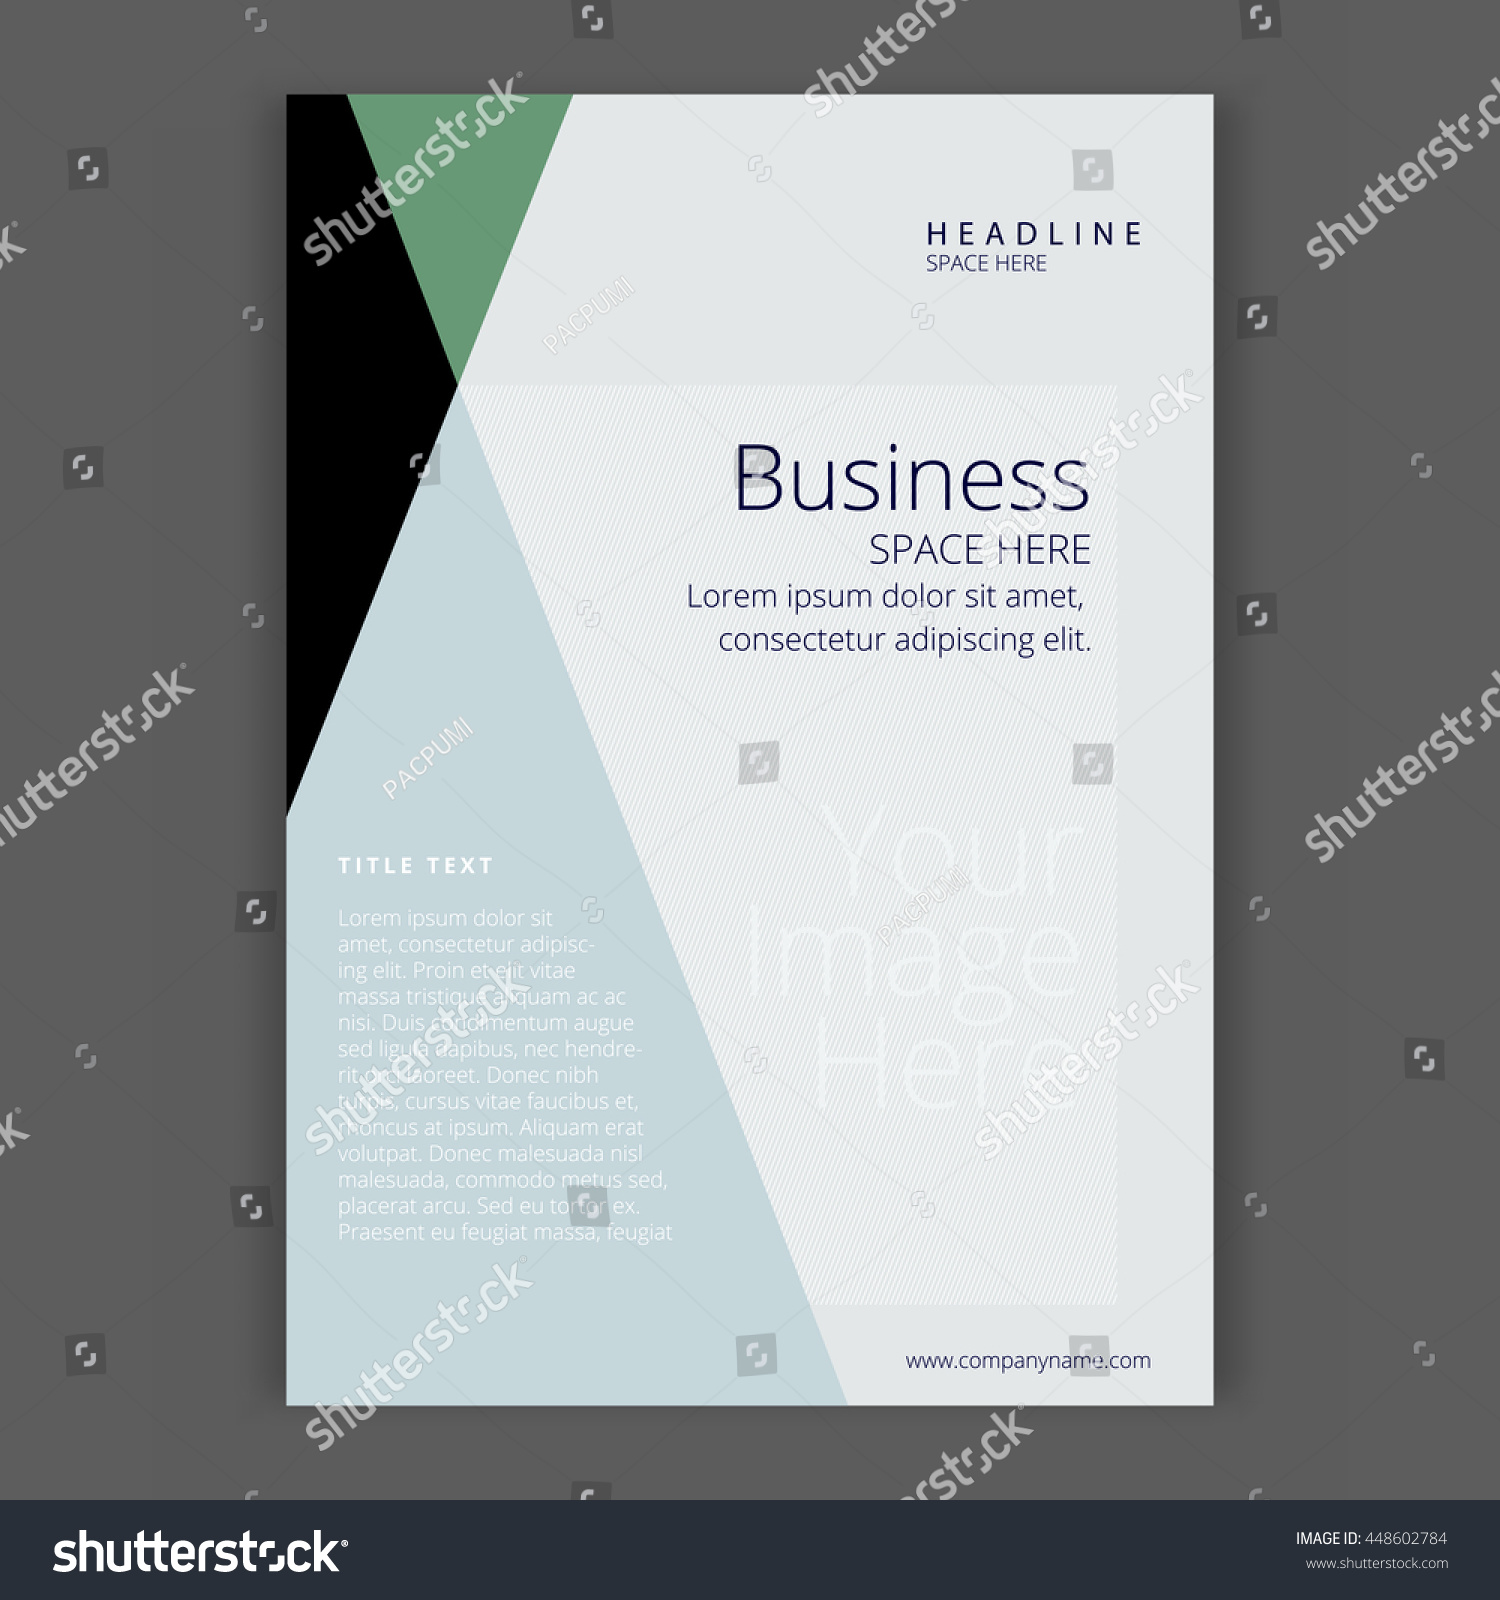 Business Book Cover Design Template : Modern simple template design business book stock vector